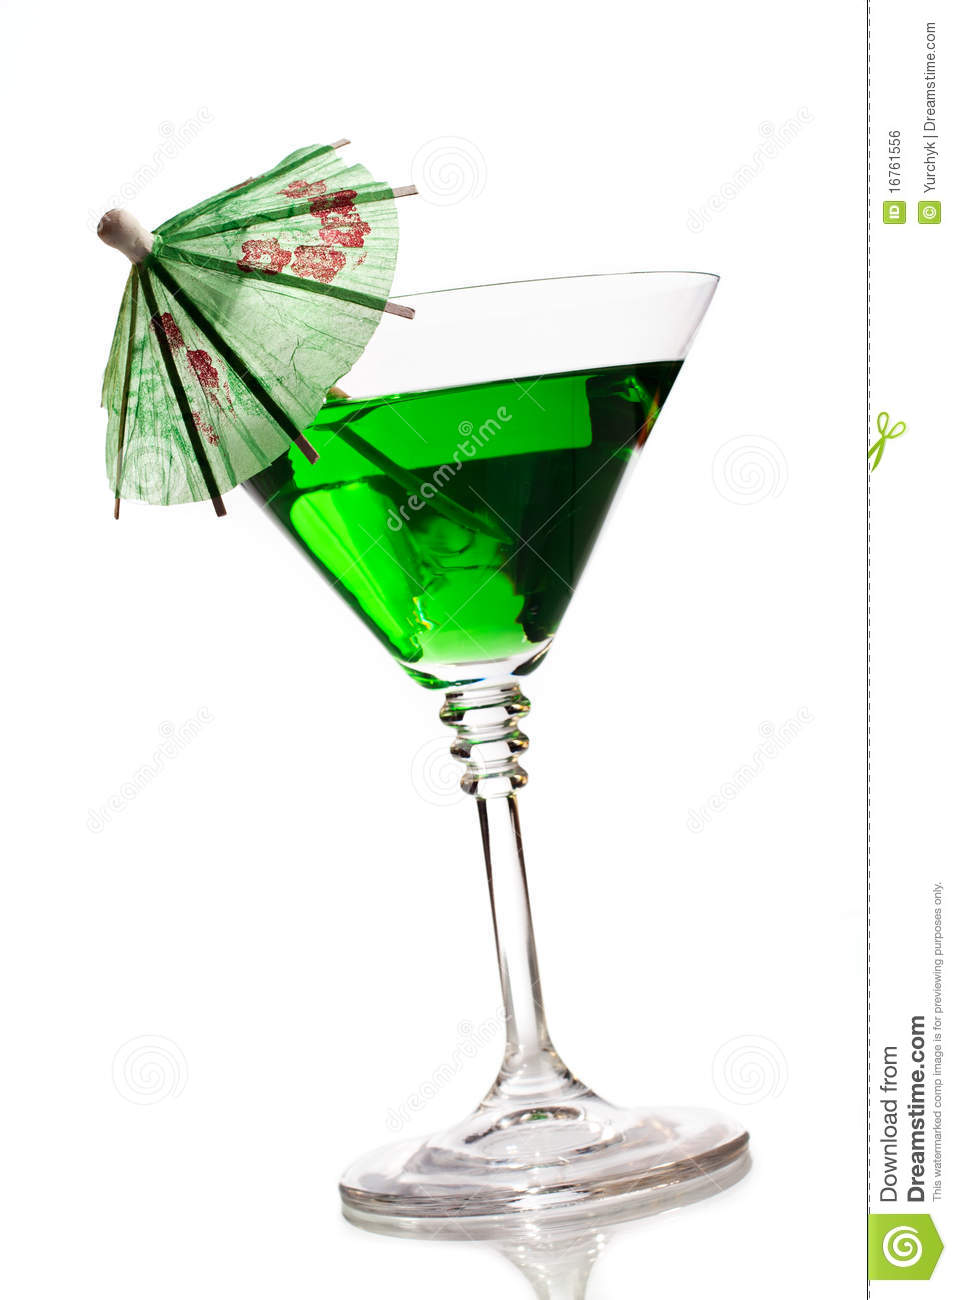 cocktail with umbrella royalty free stock image image